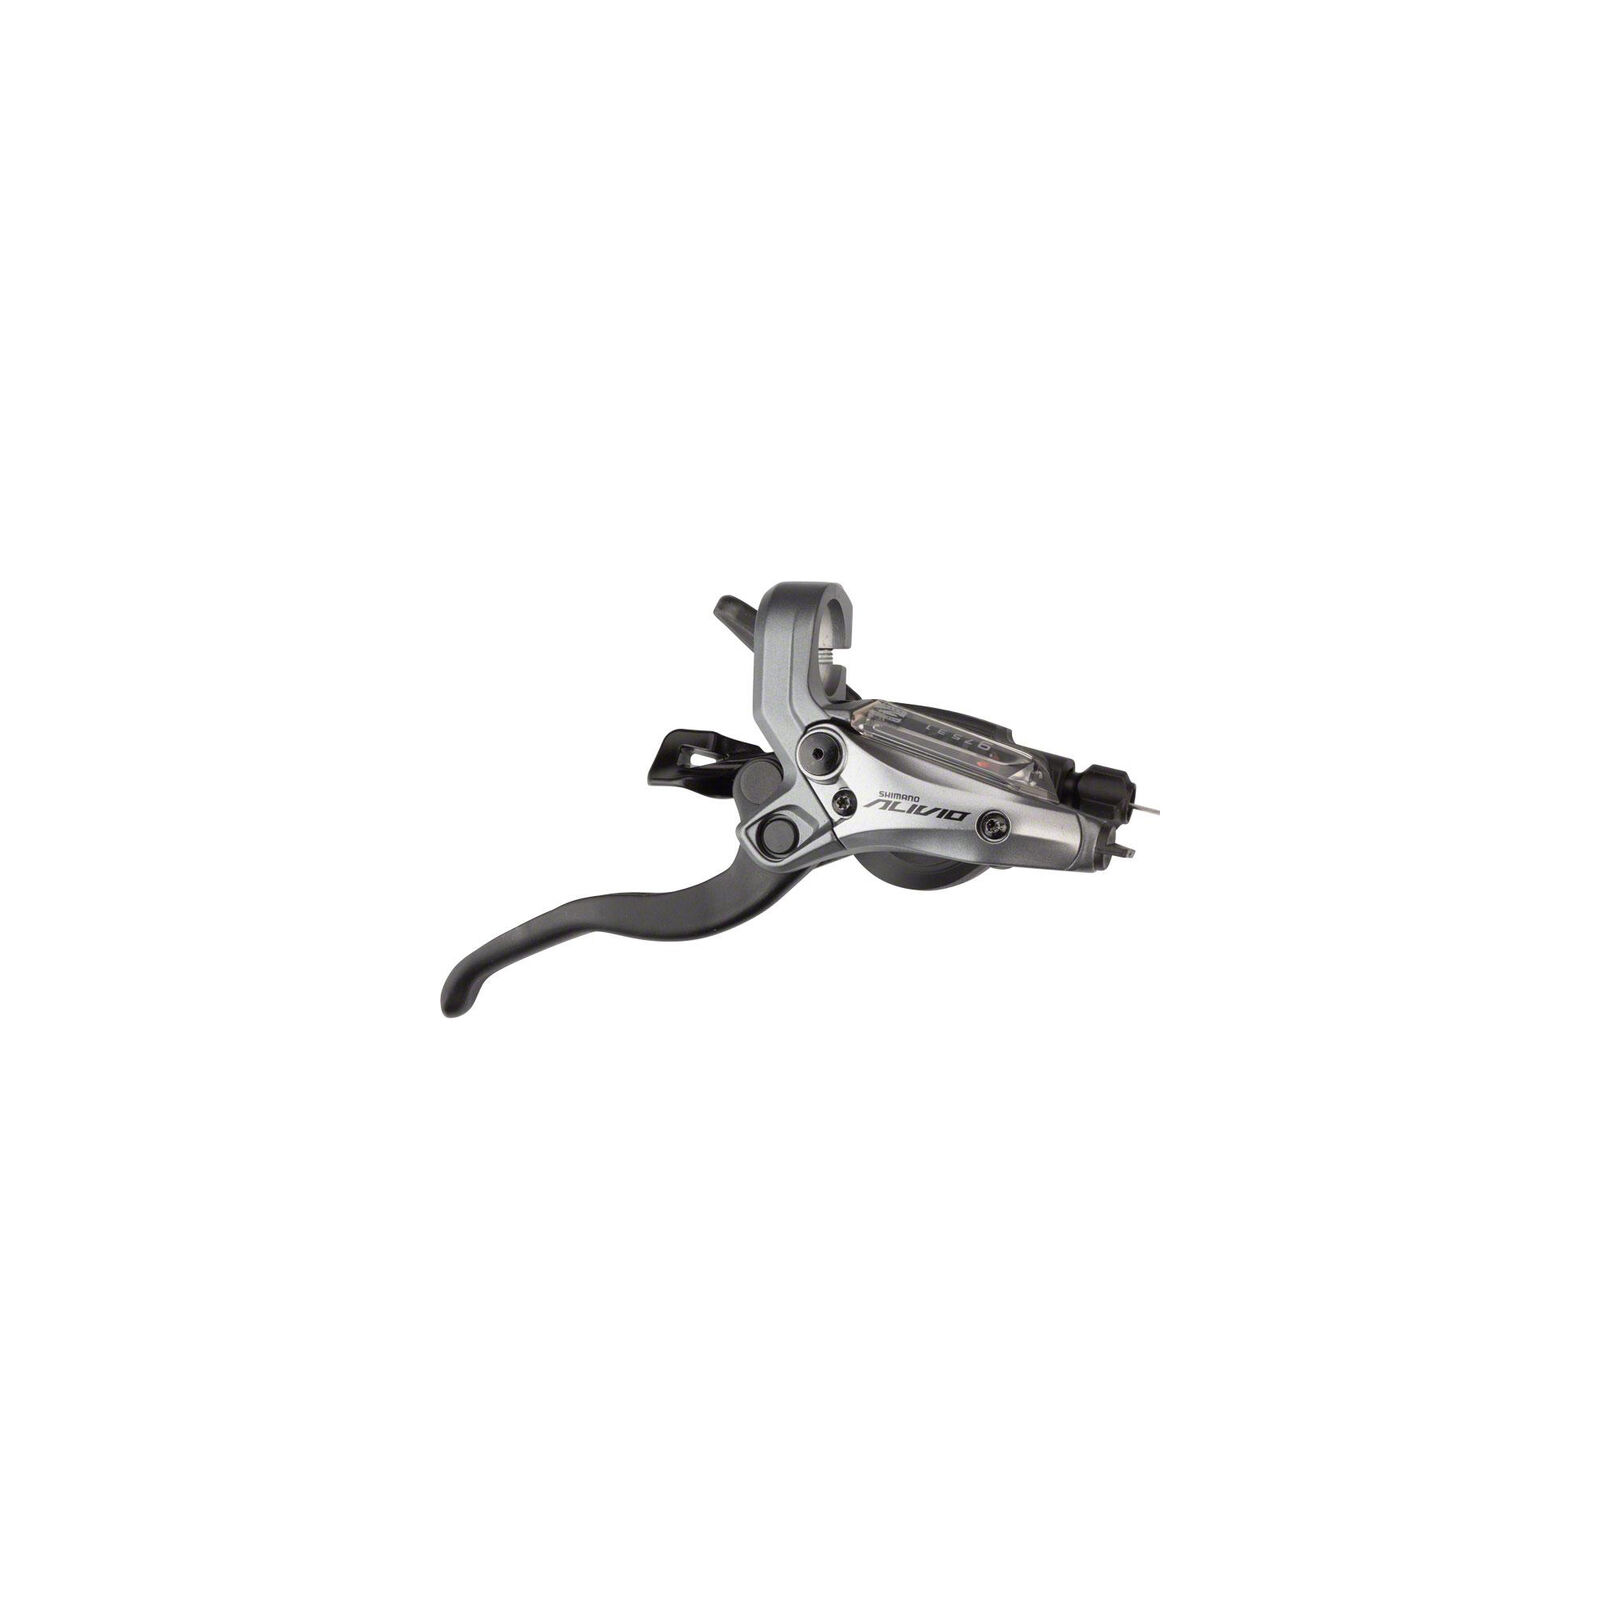 Shimano Alivio M4050 9-Speed Right Hydraulic Brake/Shift Lever